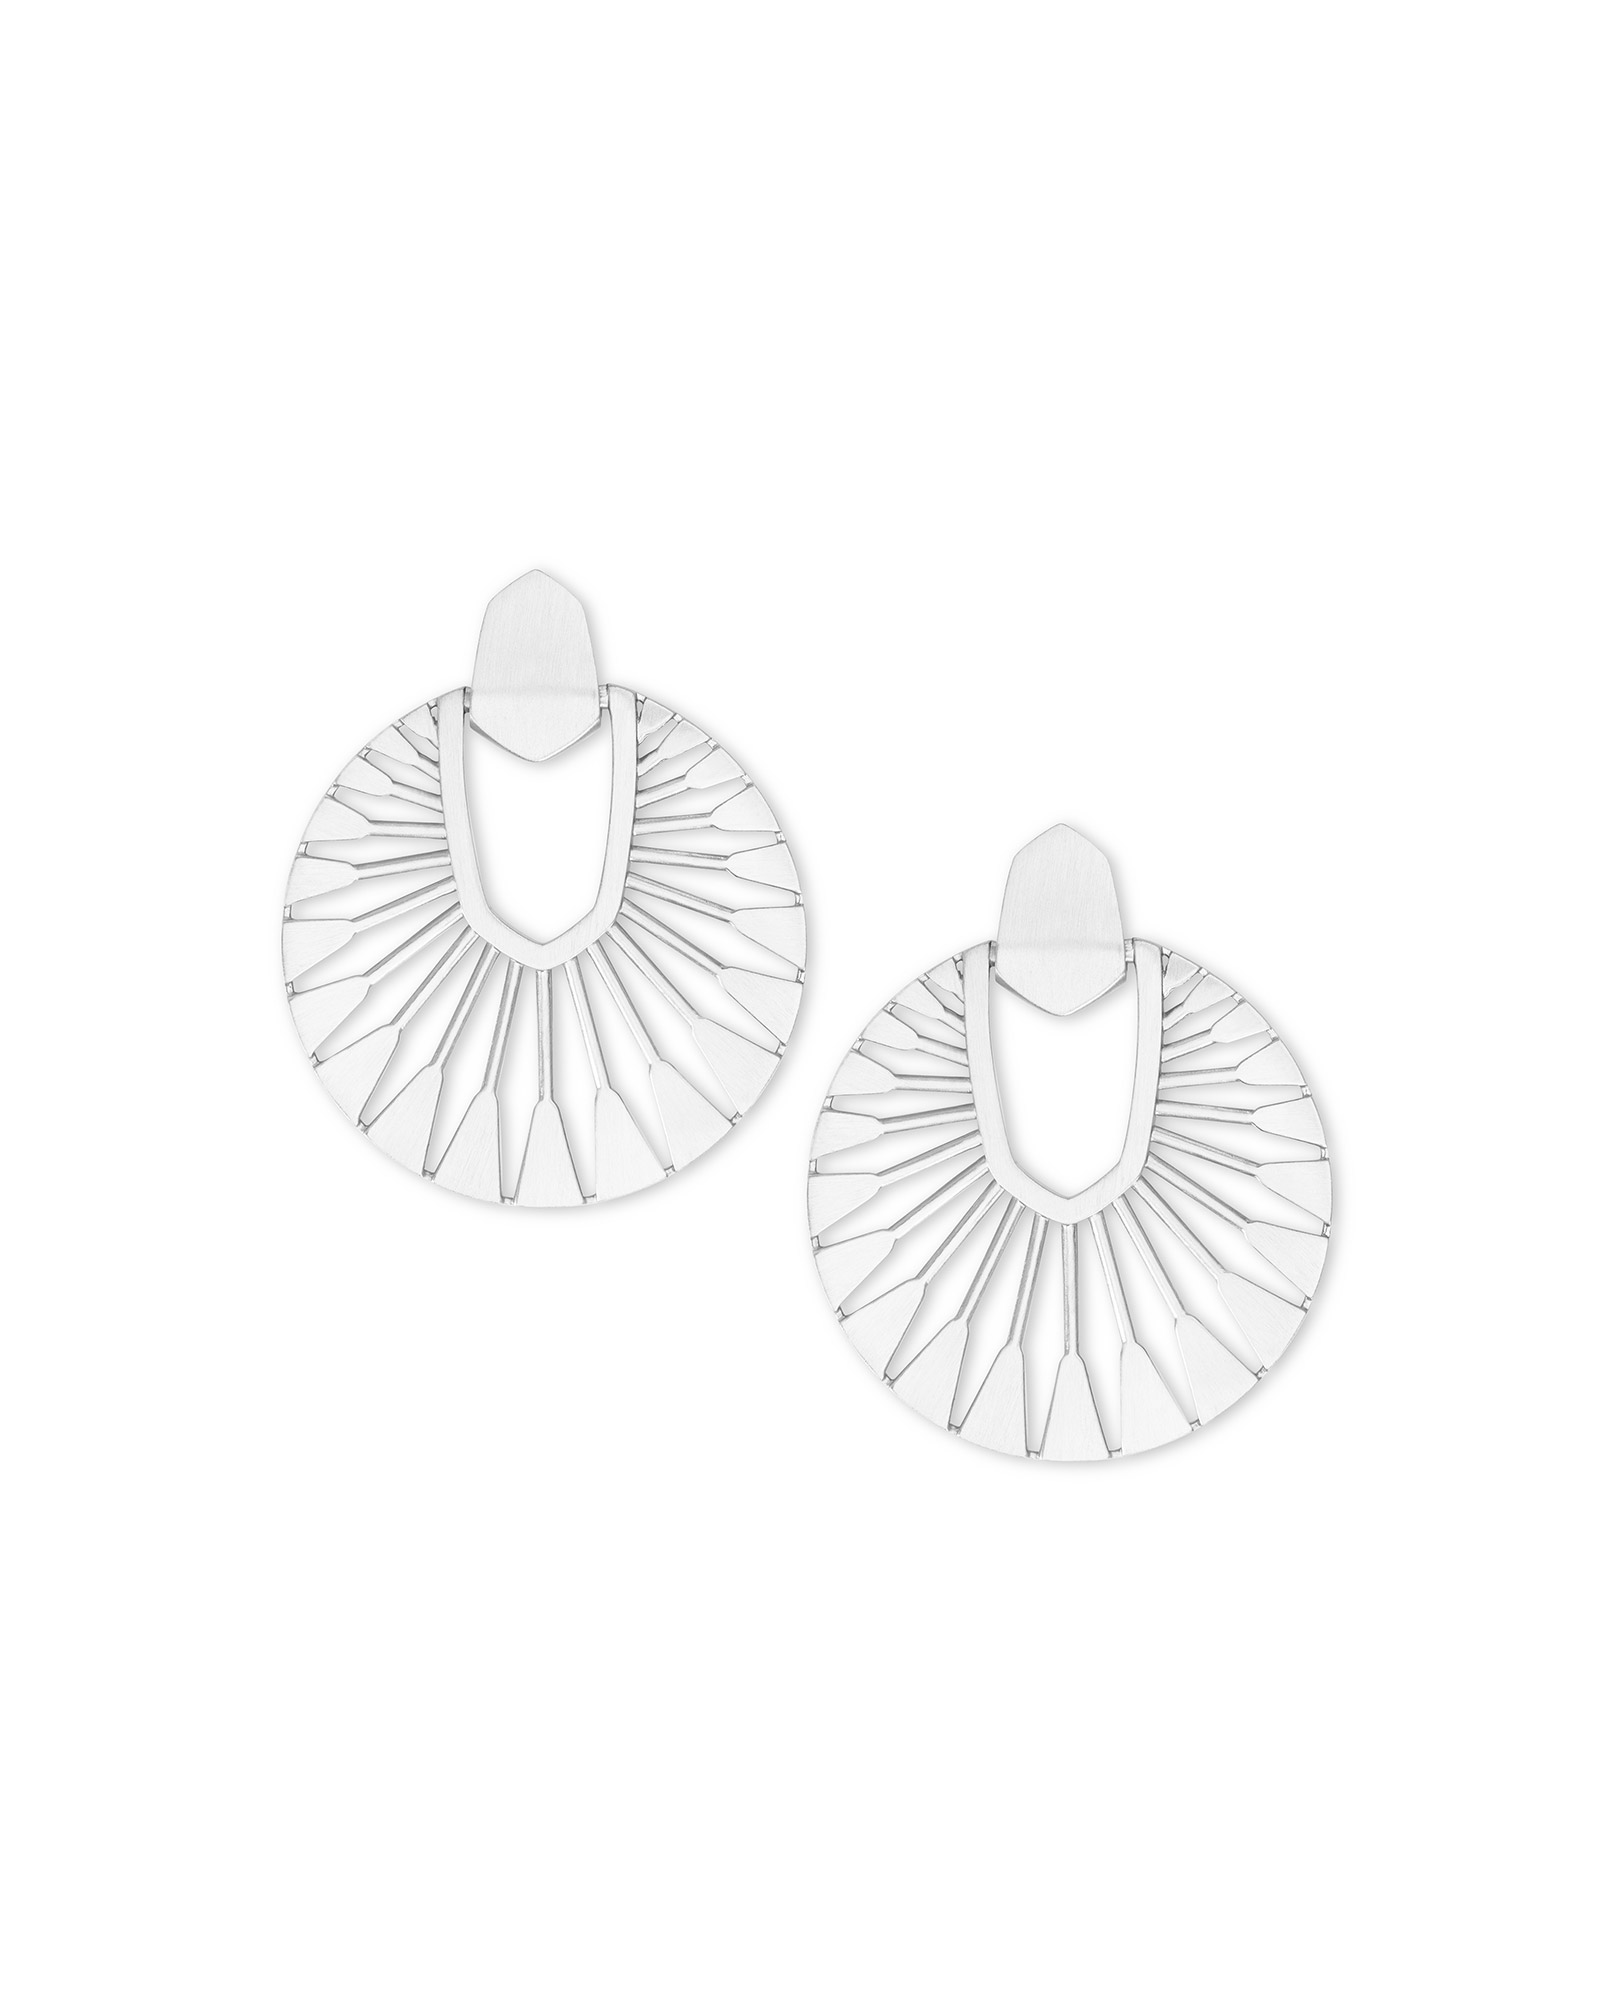 Didi Sunburst Statement Earrings in Bright Silver